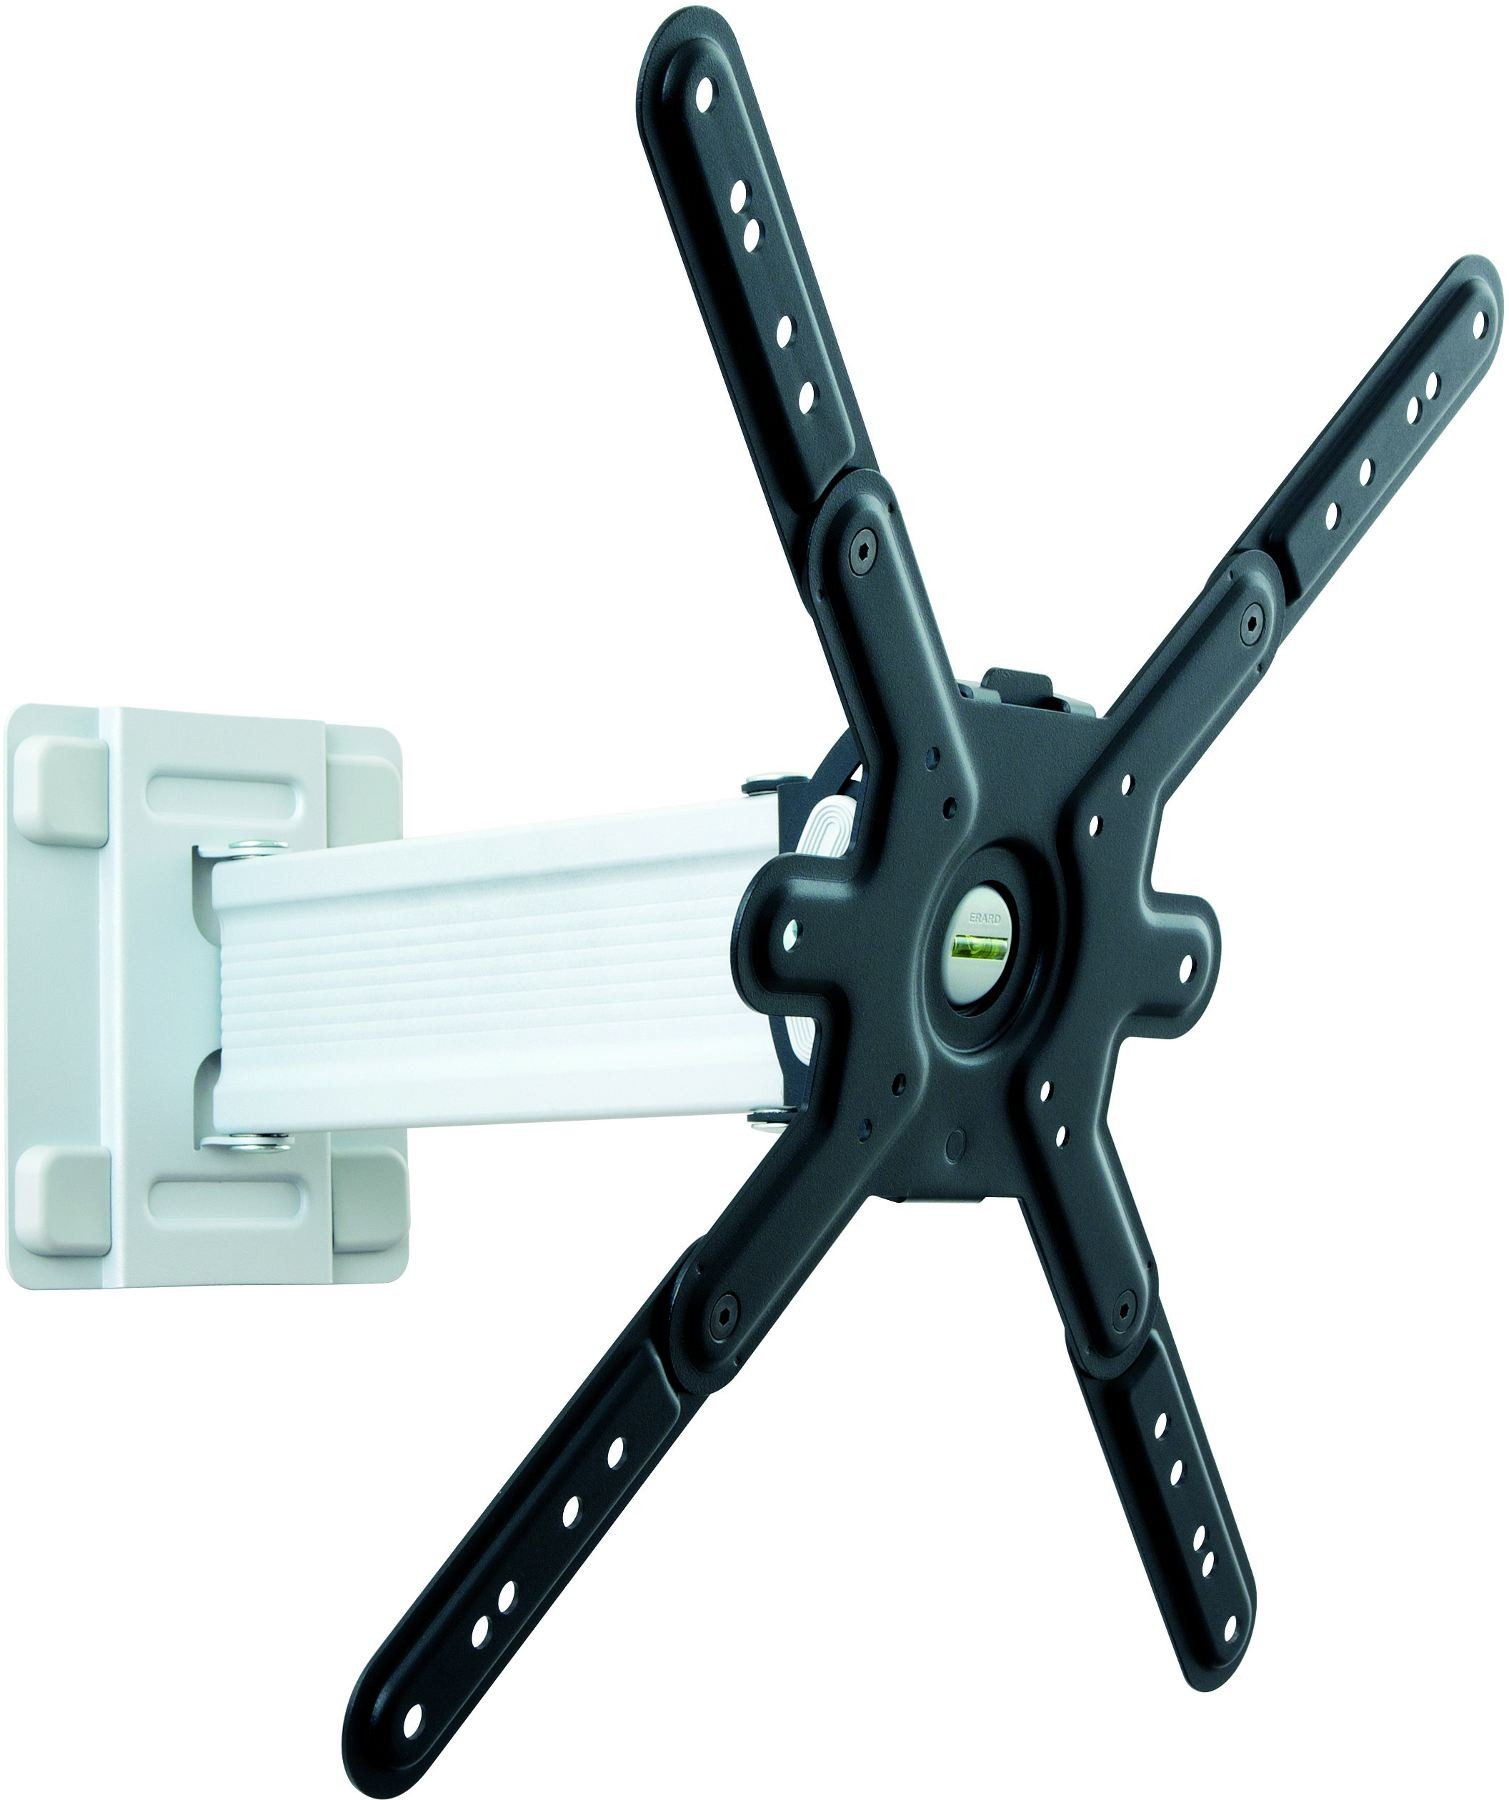 Support tv orientable et inclinable - Support tv mural orientable et inclinable ...